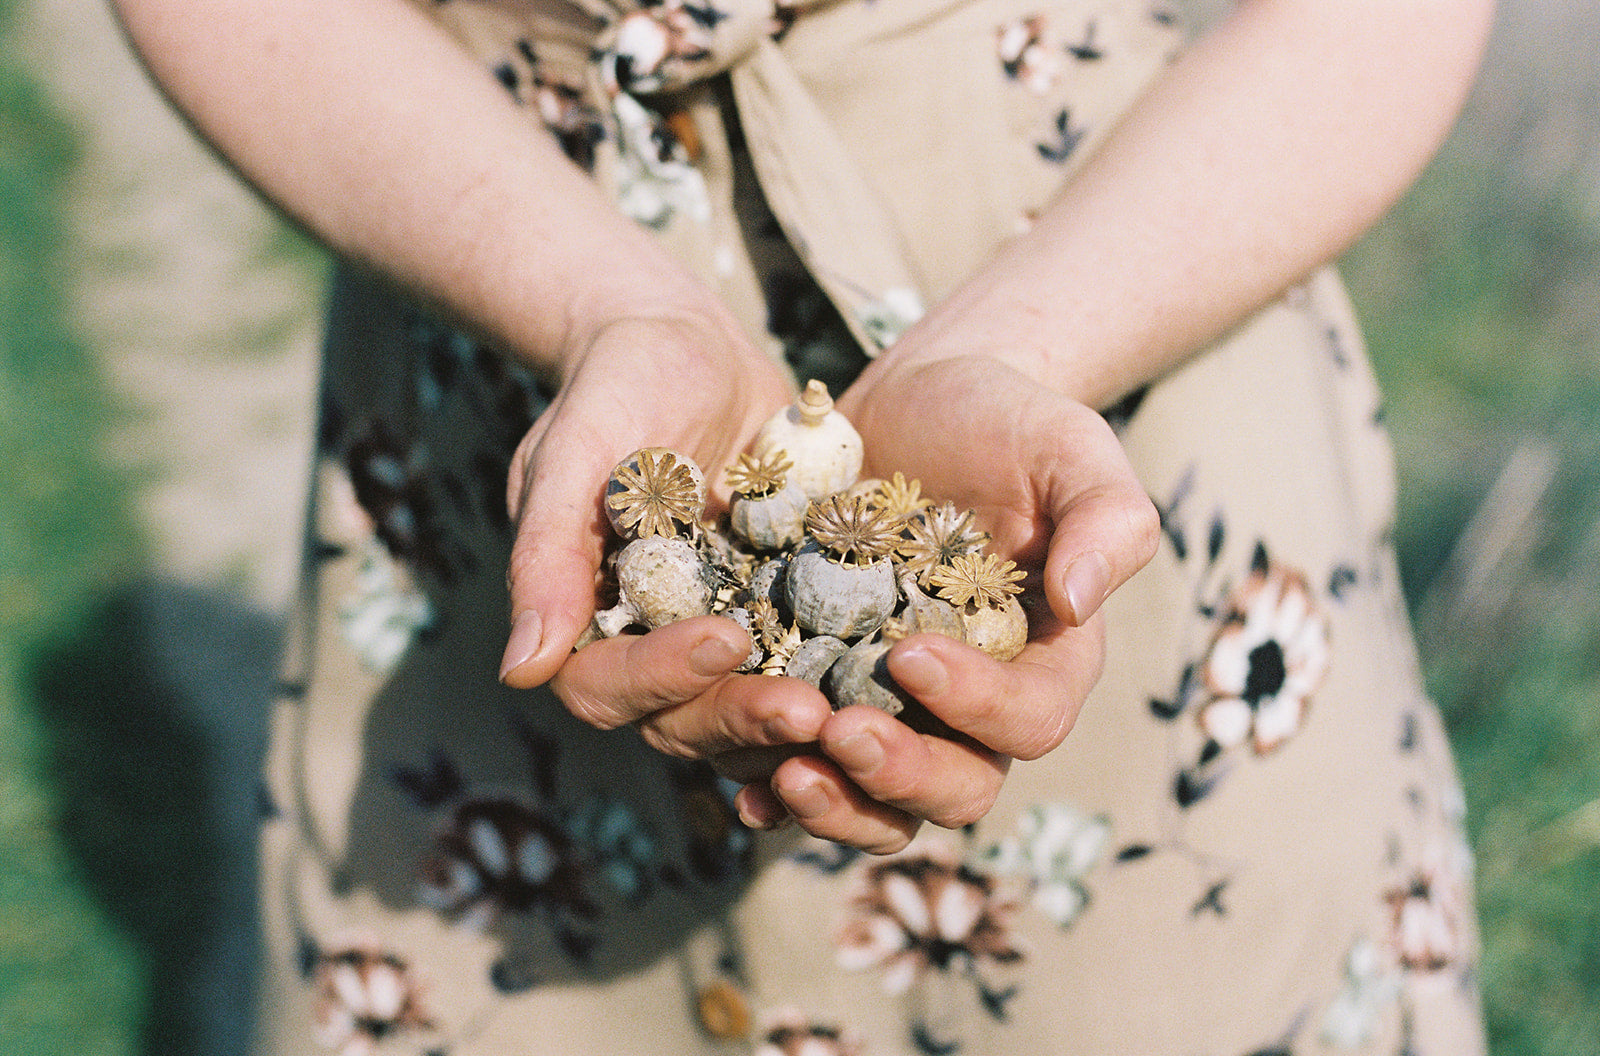 woman's hand full of poppy pods wearing a field day dress